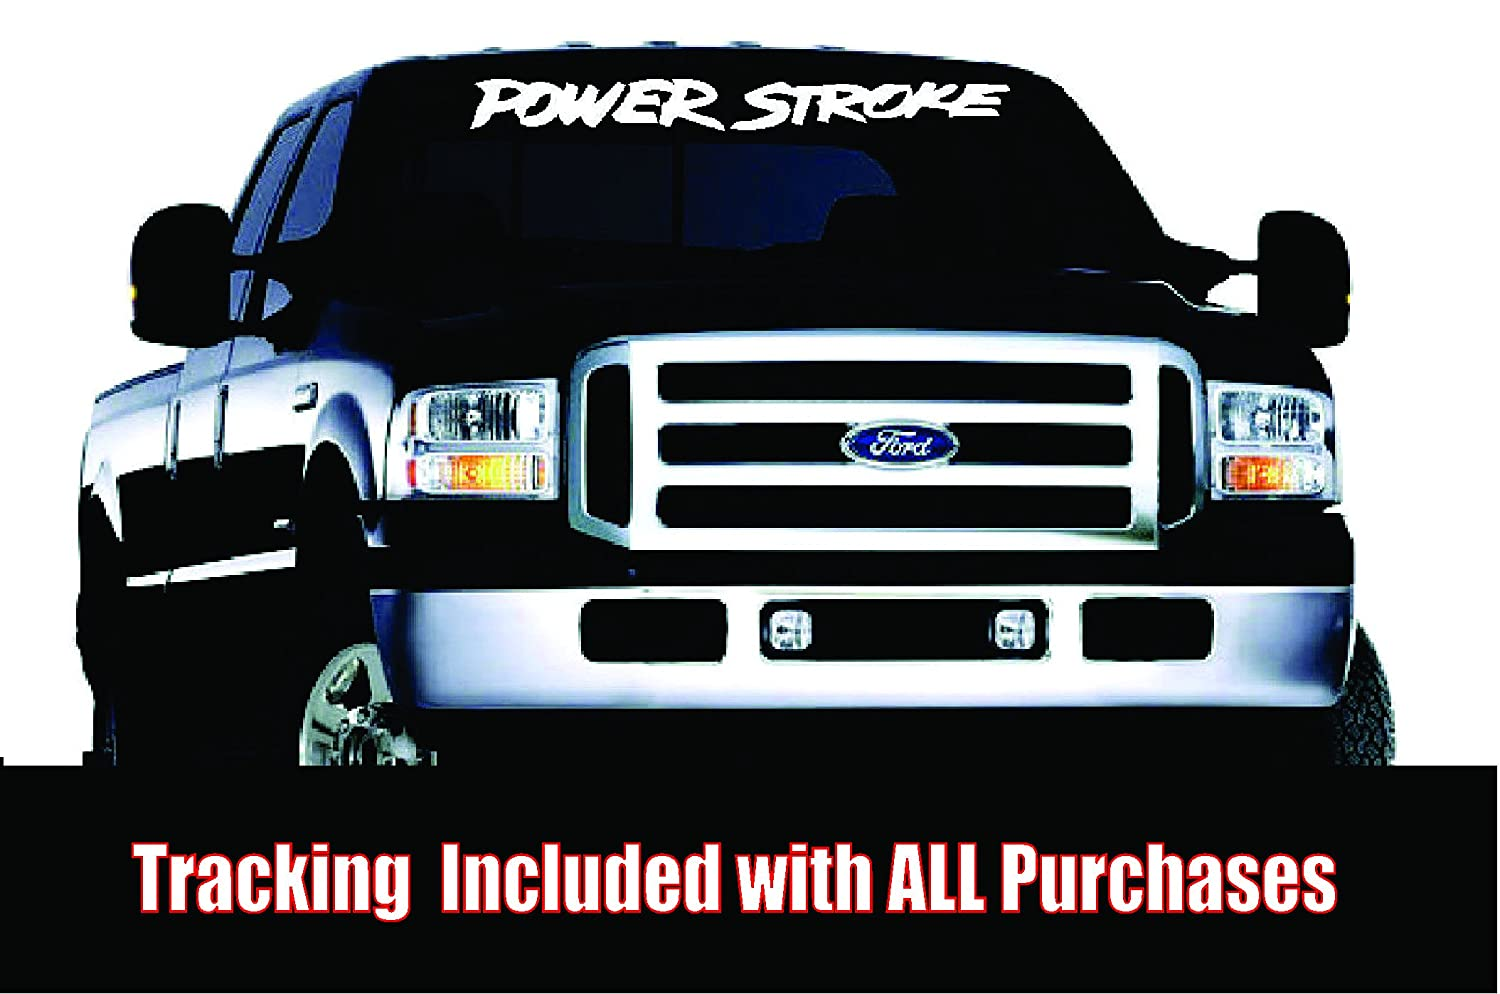 Amazoncom Powerstroke Windshield Banner Everything Else - Front window decals for trucks